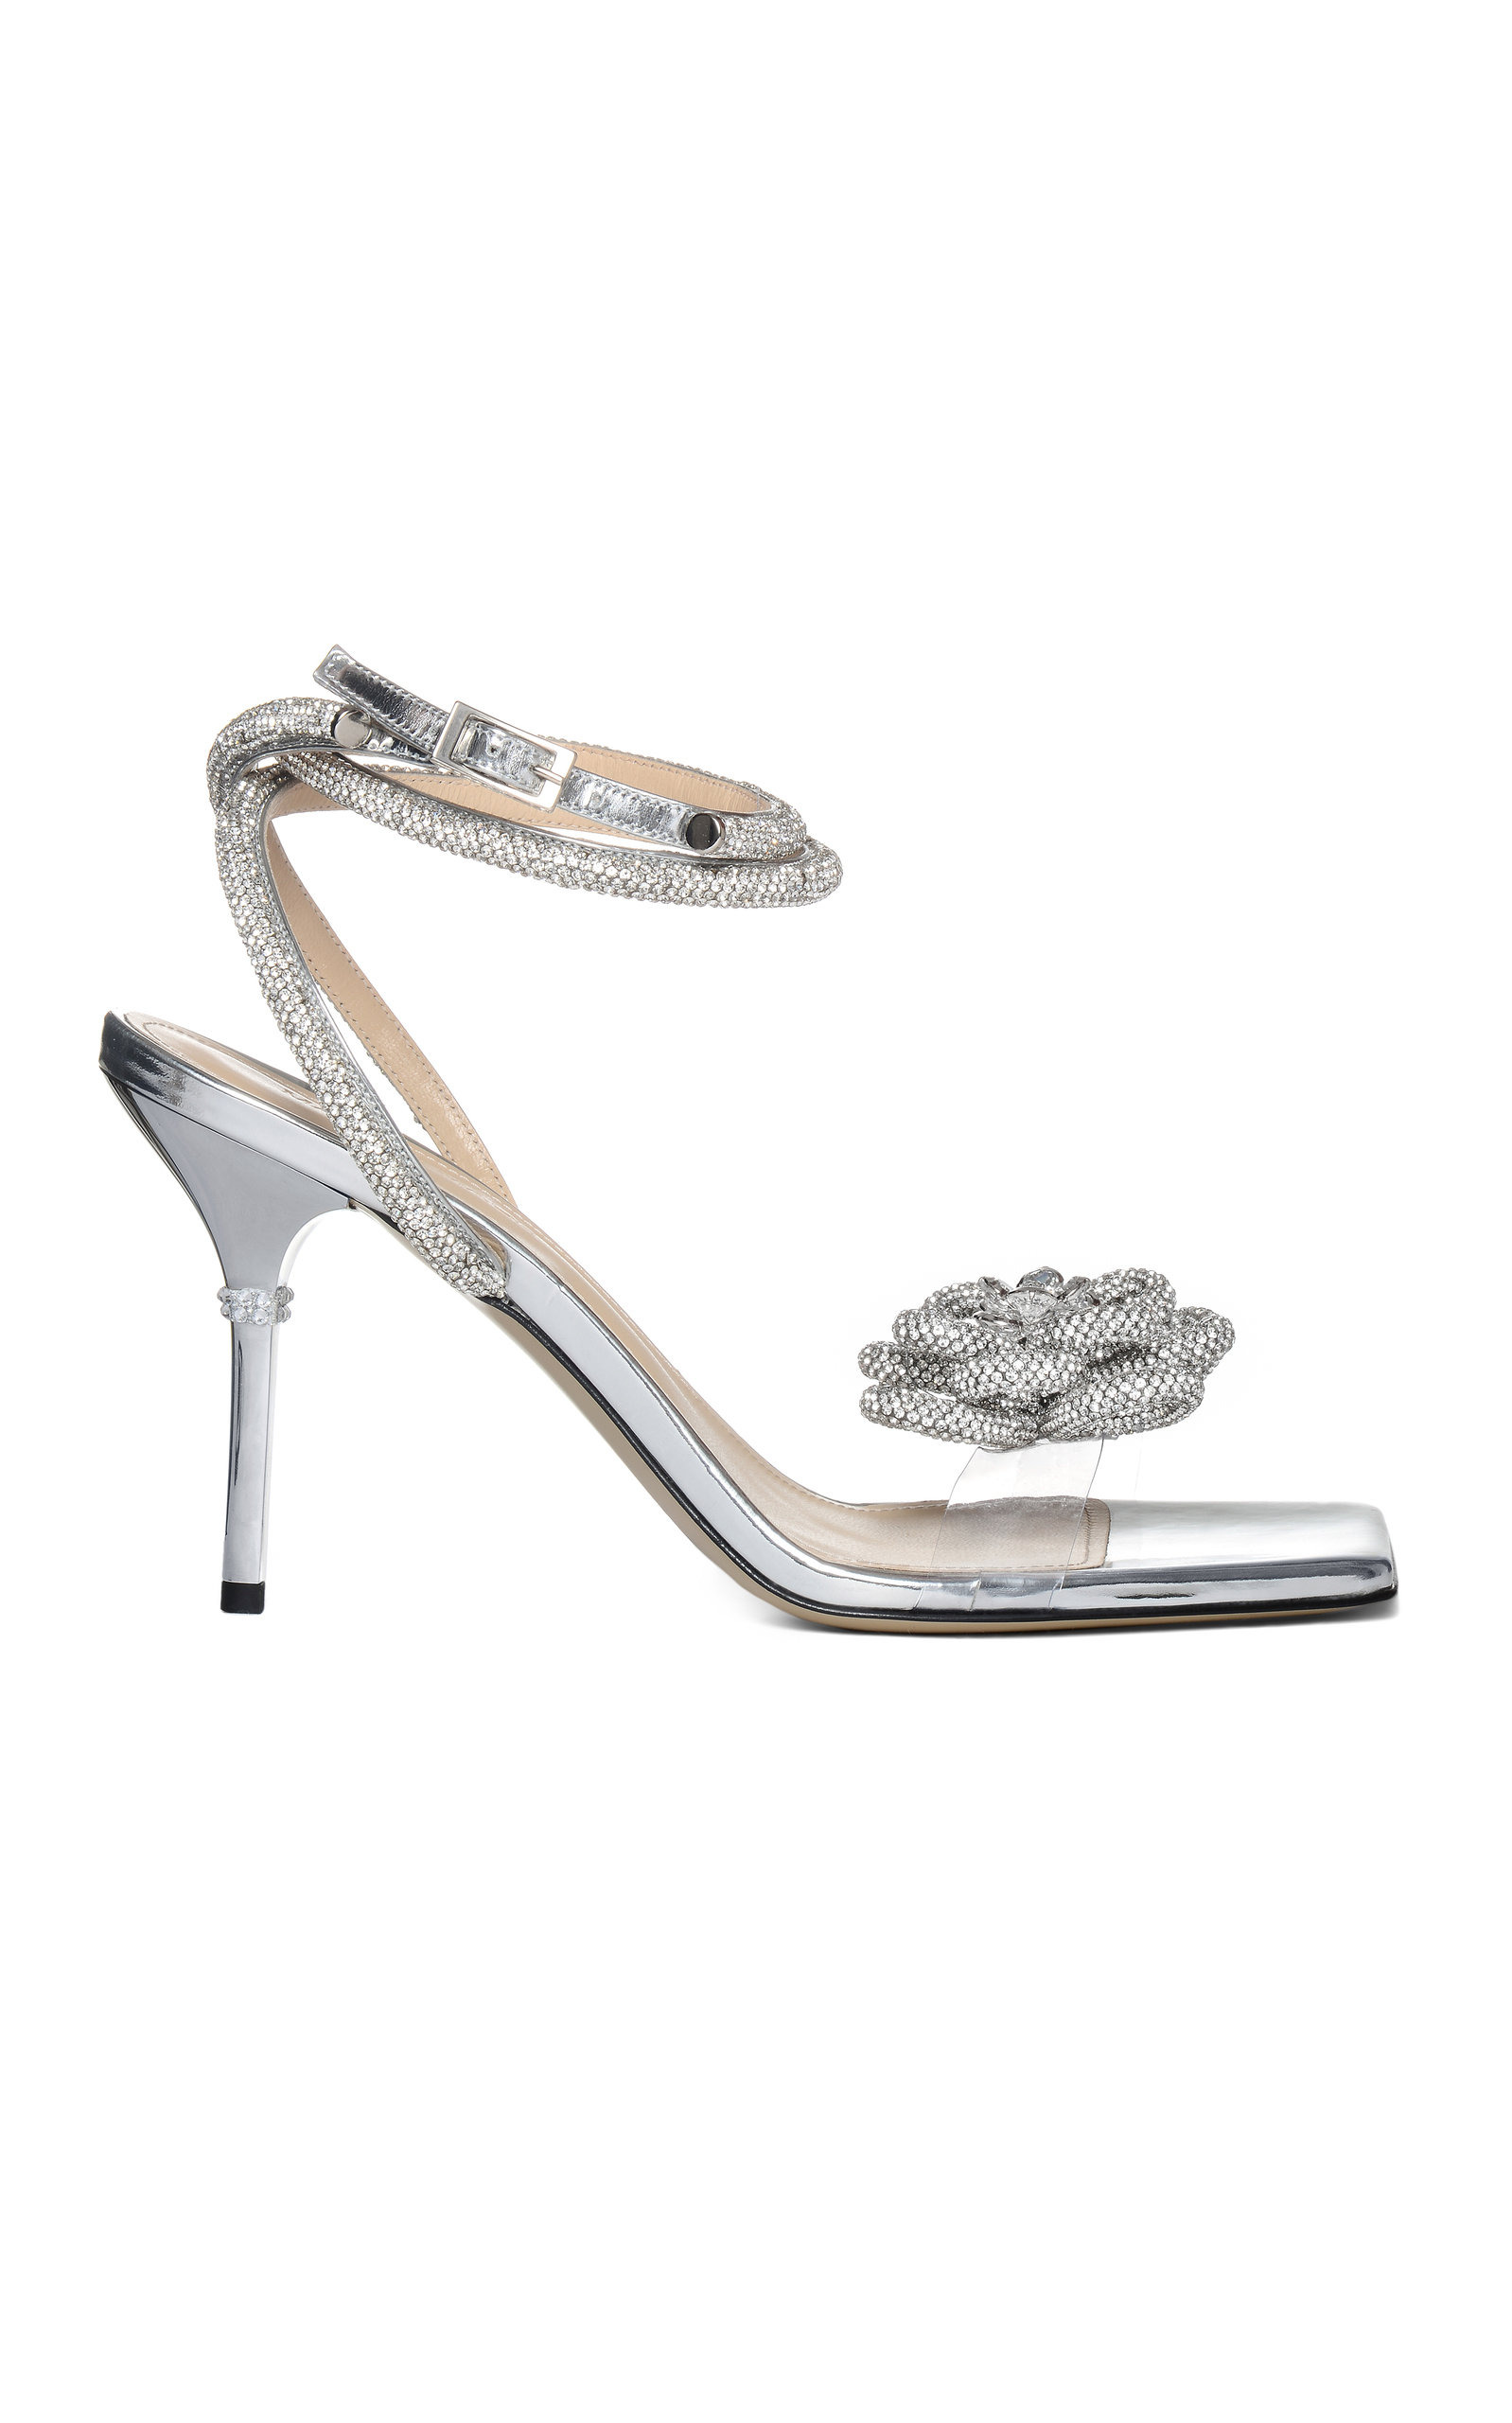 Women's Crystal Square Toe Sandals